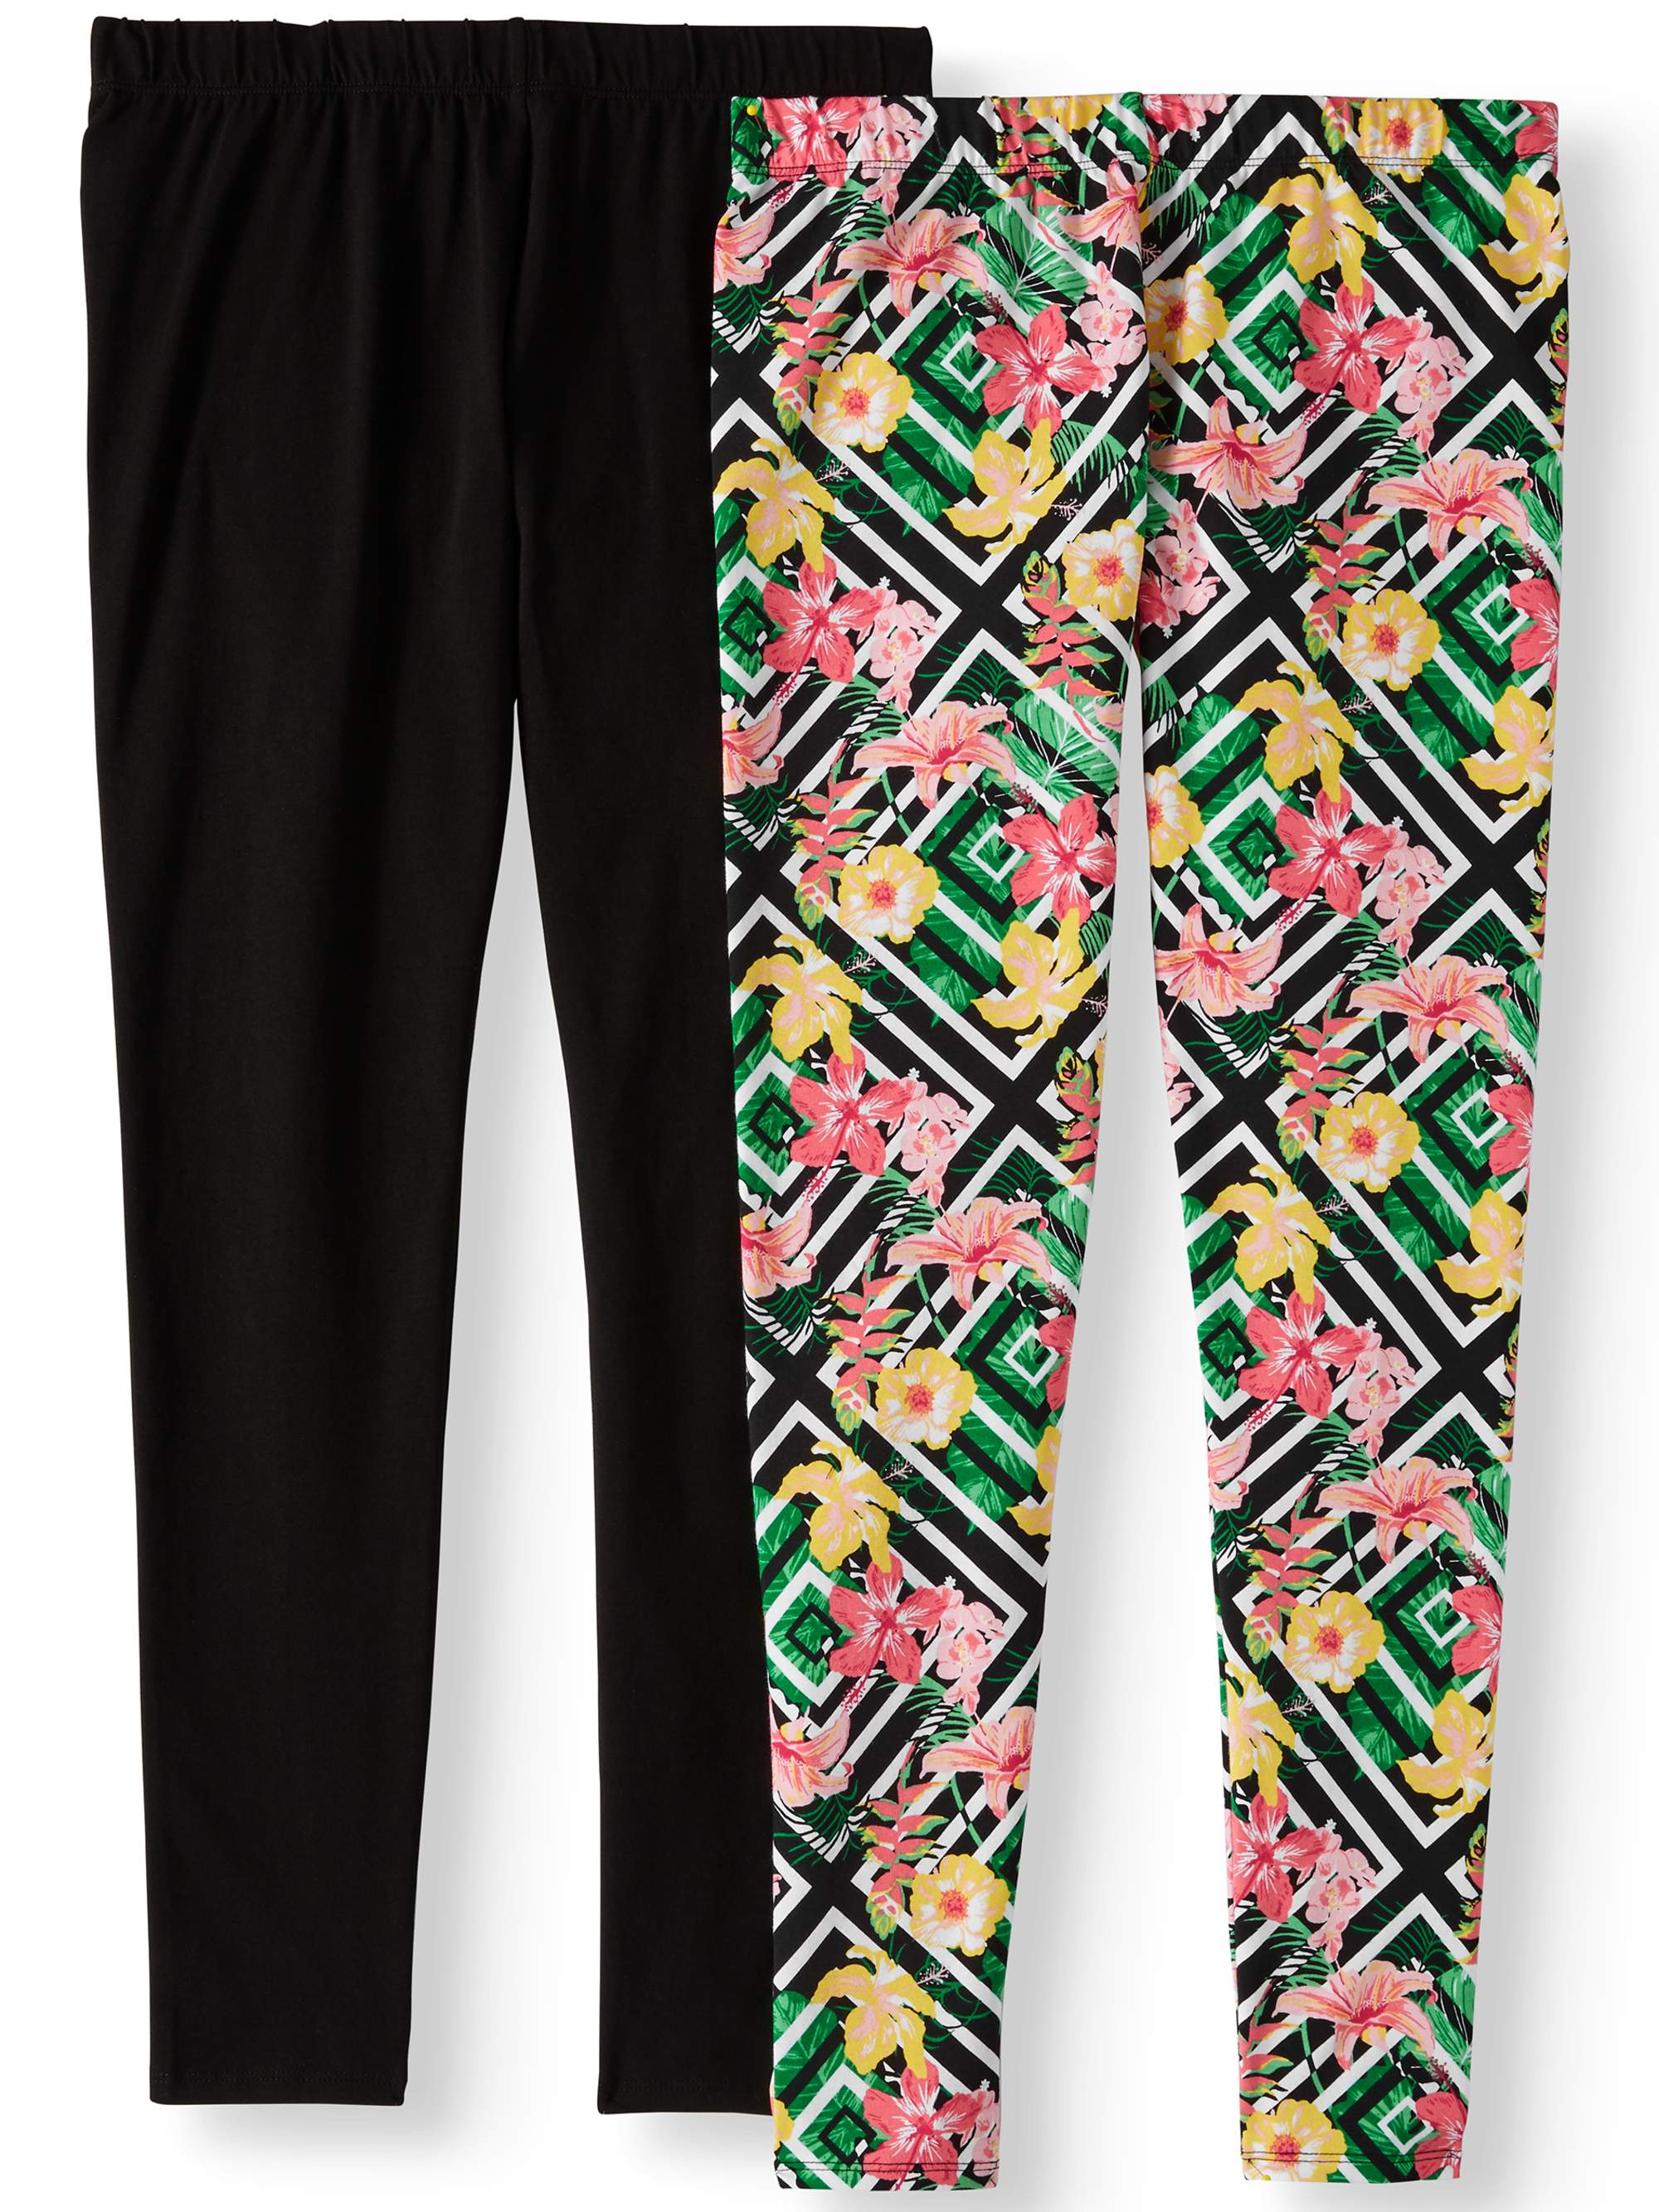 Juniors' Print & Solid Knit Ankle Legging 2 Pack Value Bundle